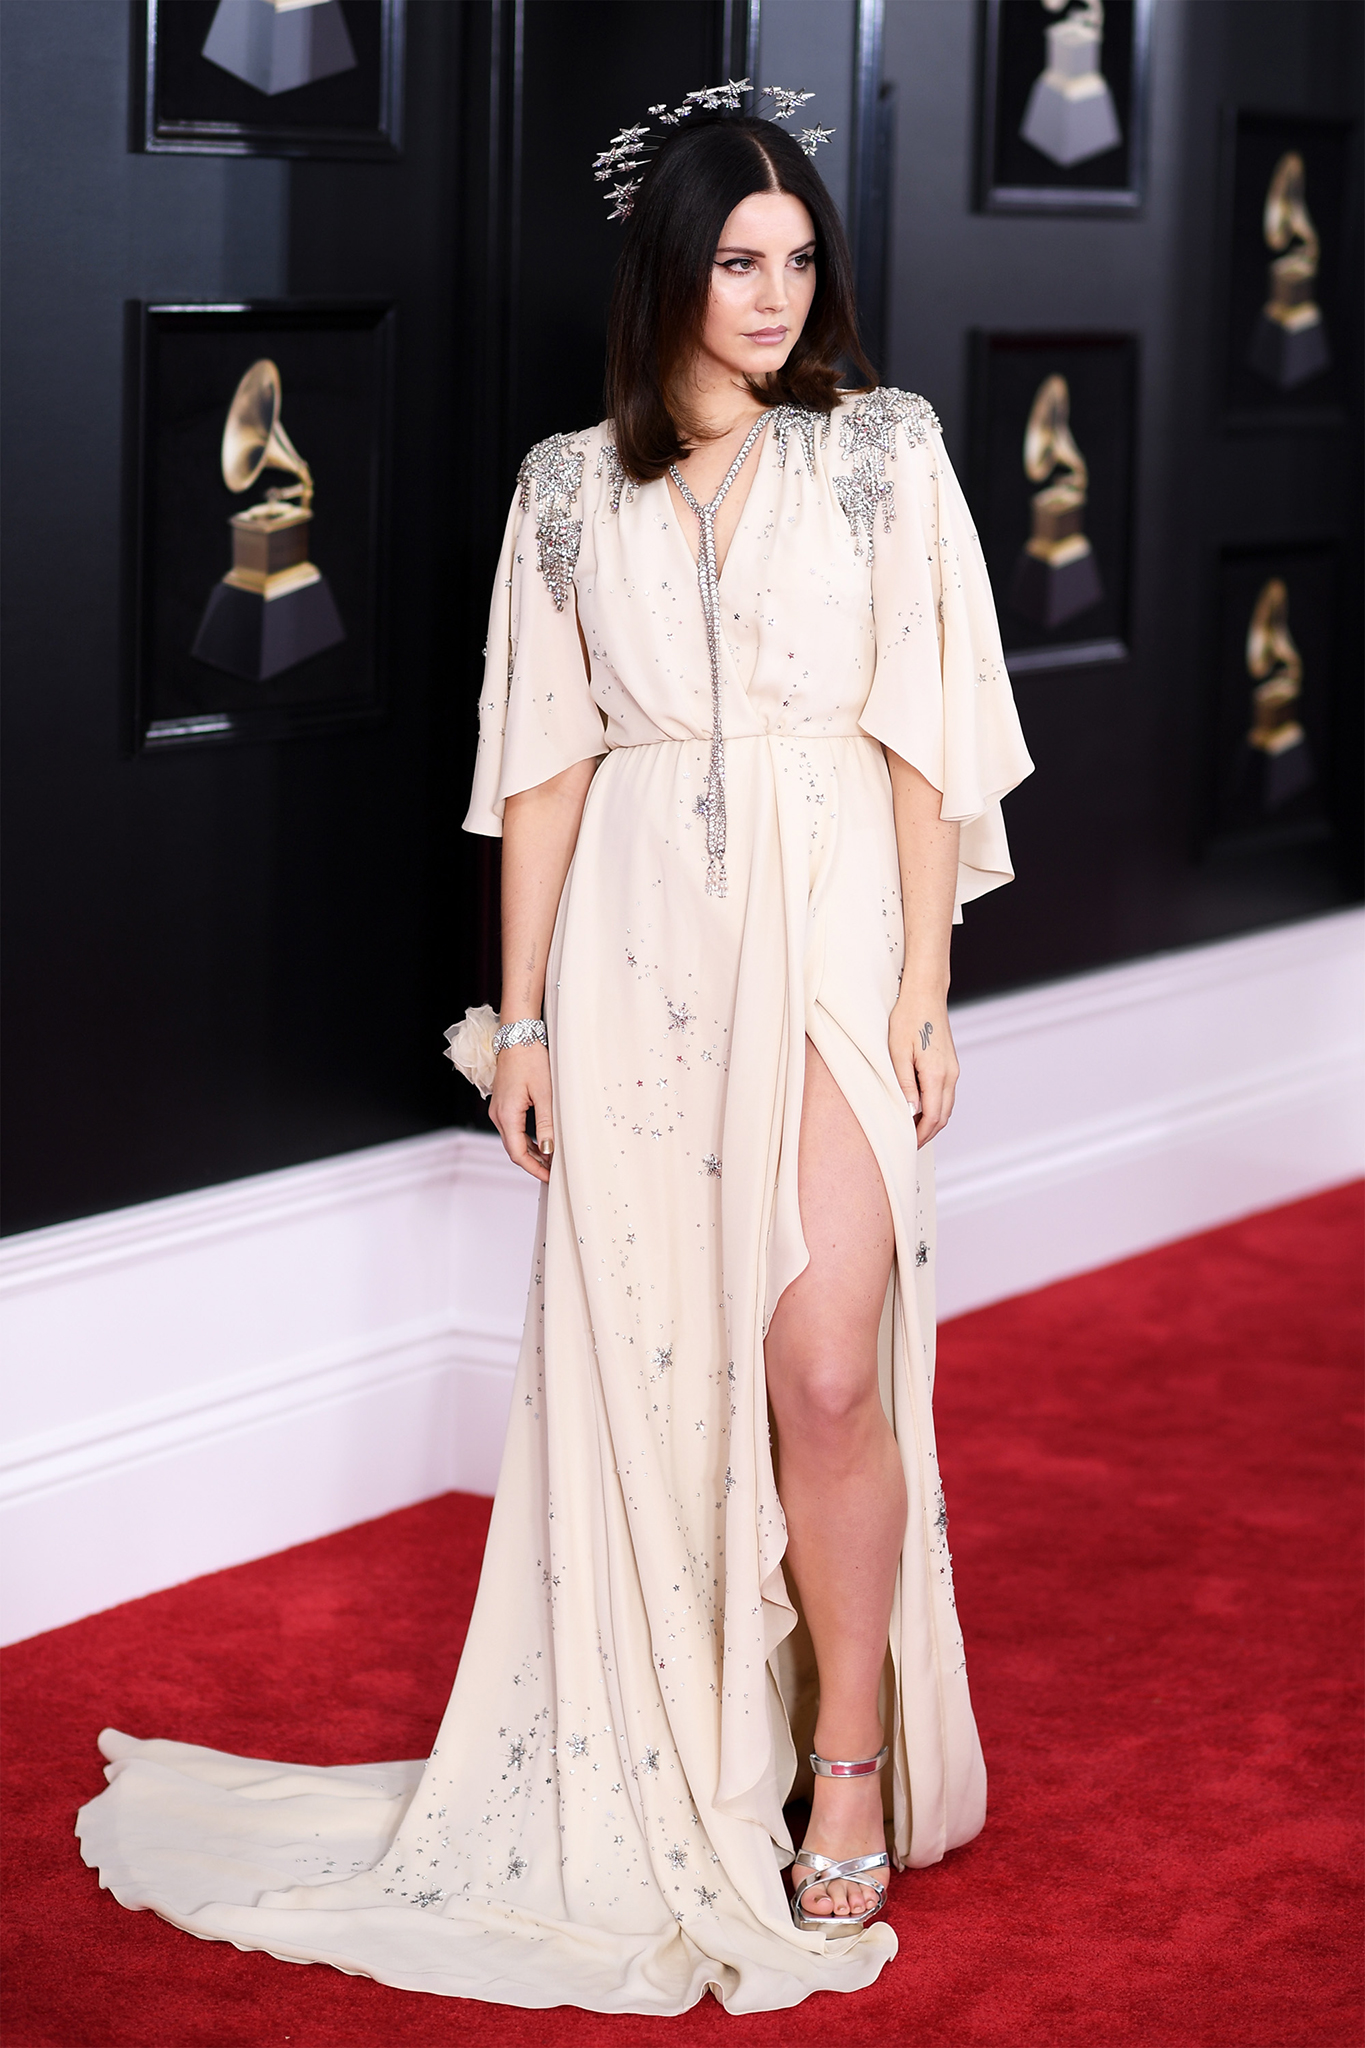 Recording artist Lana Del Rey attends the 60th Annual GRAMMY Awards at Madison Square Garden on January 28, 2018 in New York City.